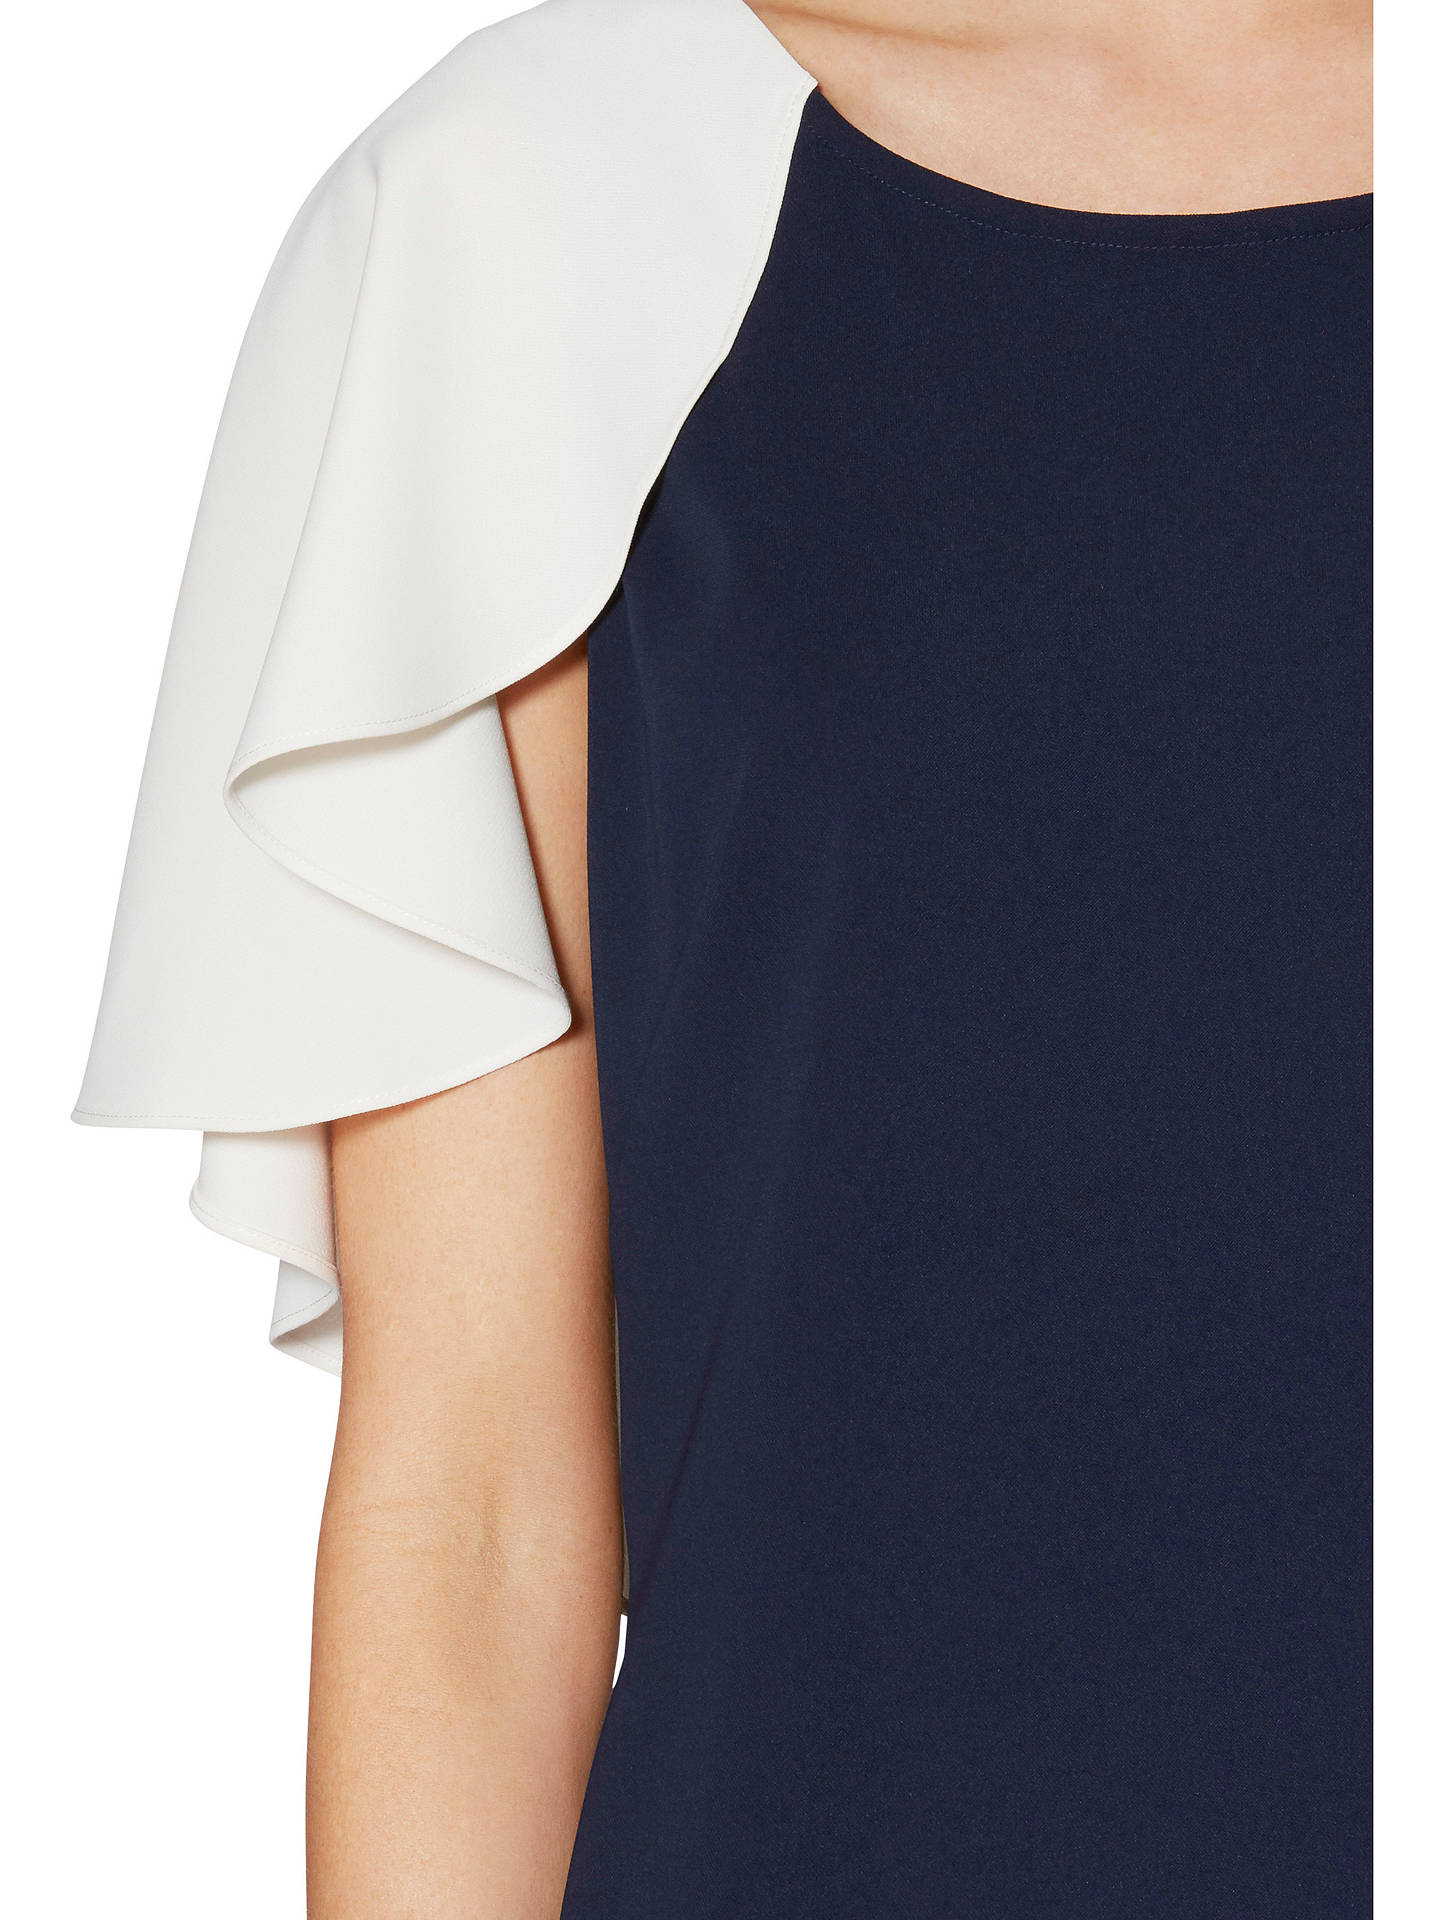 BuyGina Bacconi Chantelle Contrast Cape Crepe Dress, Spring Navy/Chalk, 8 Online at johnlewis.com